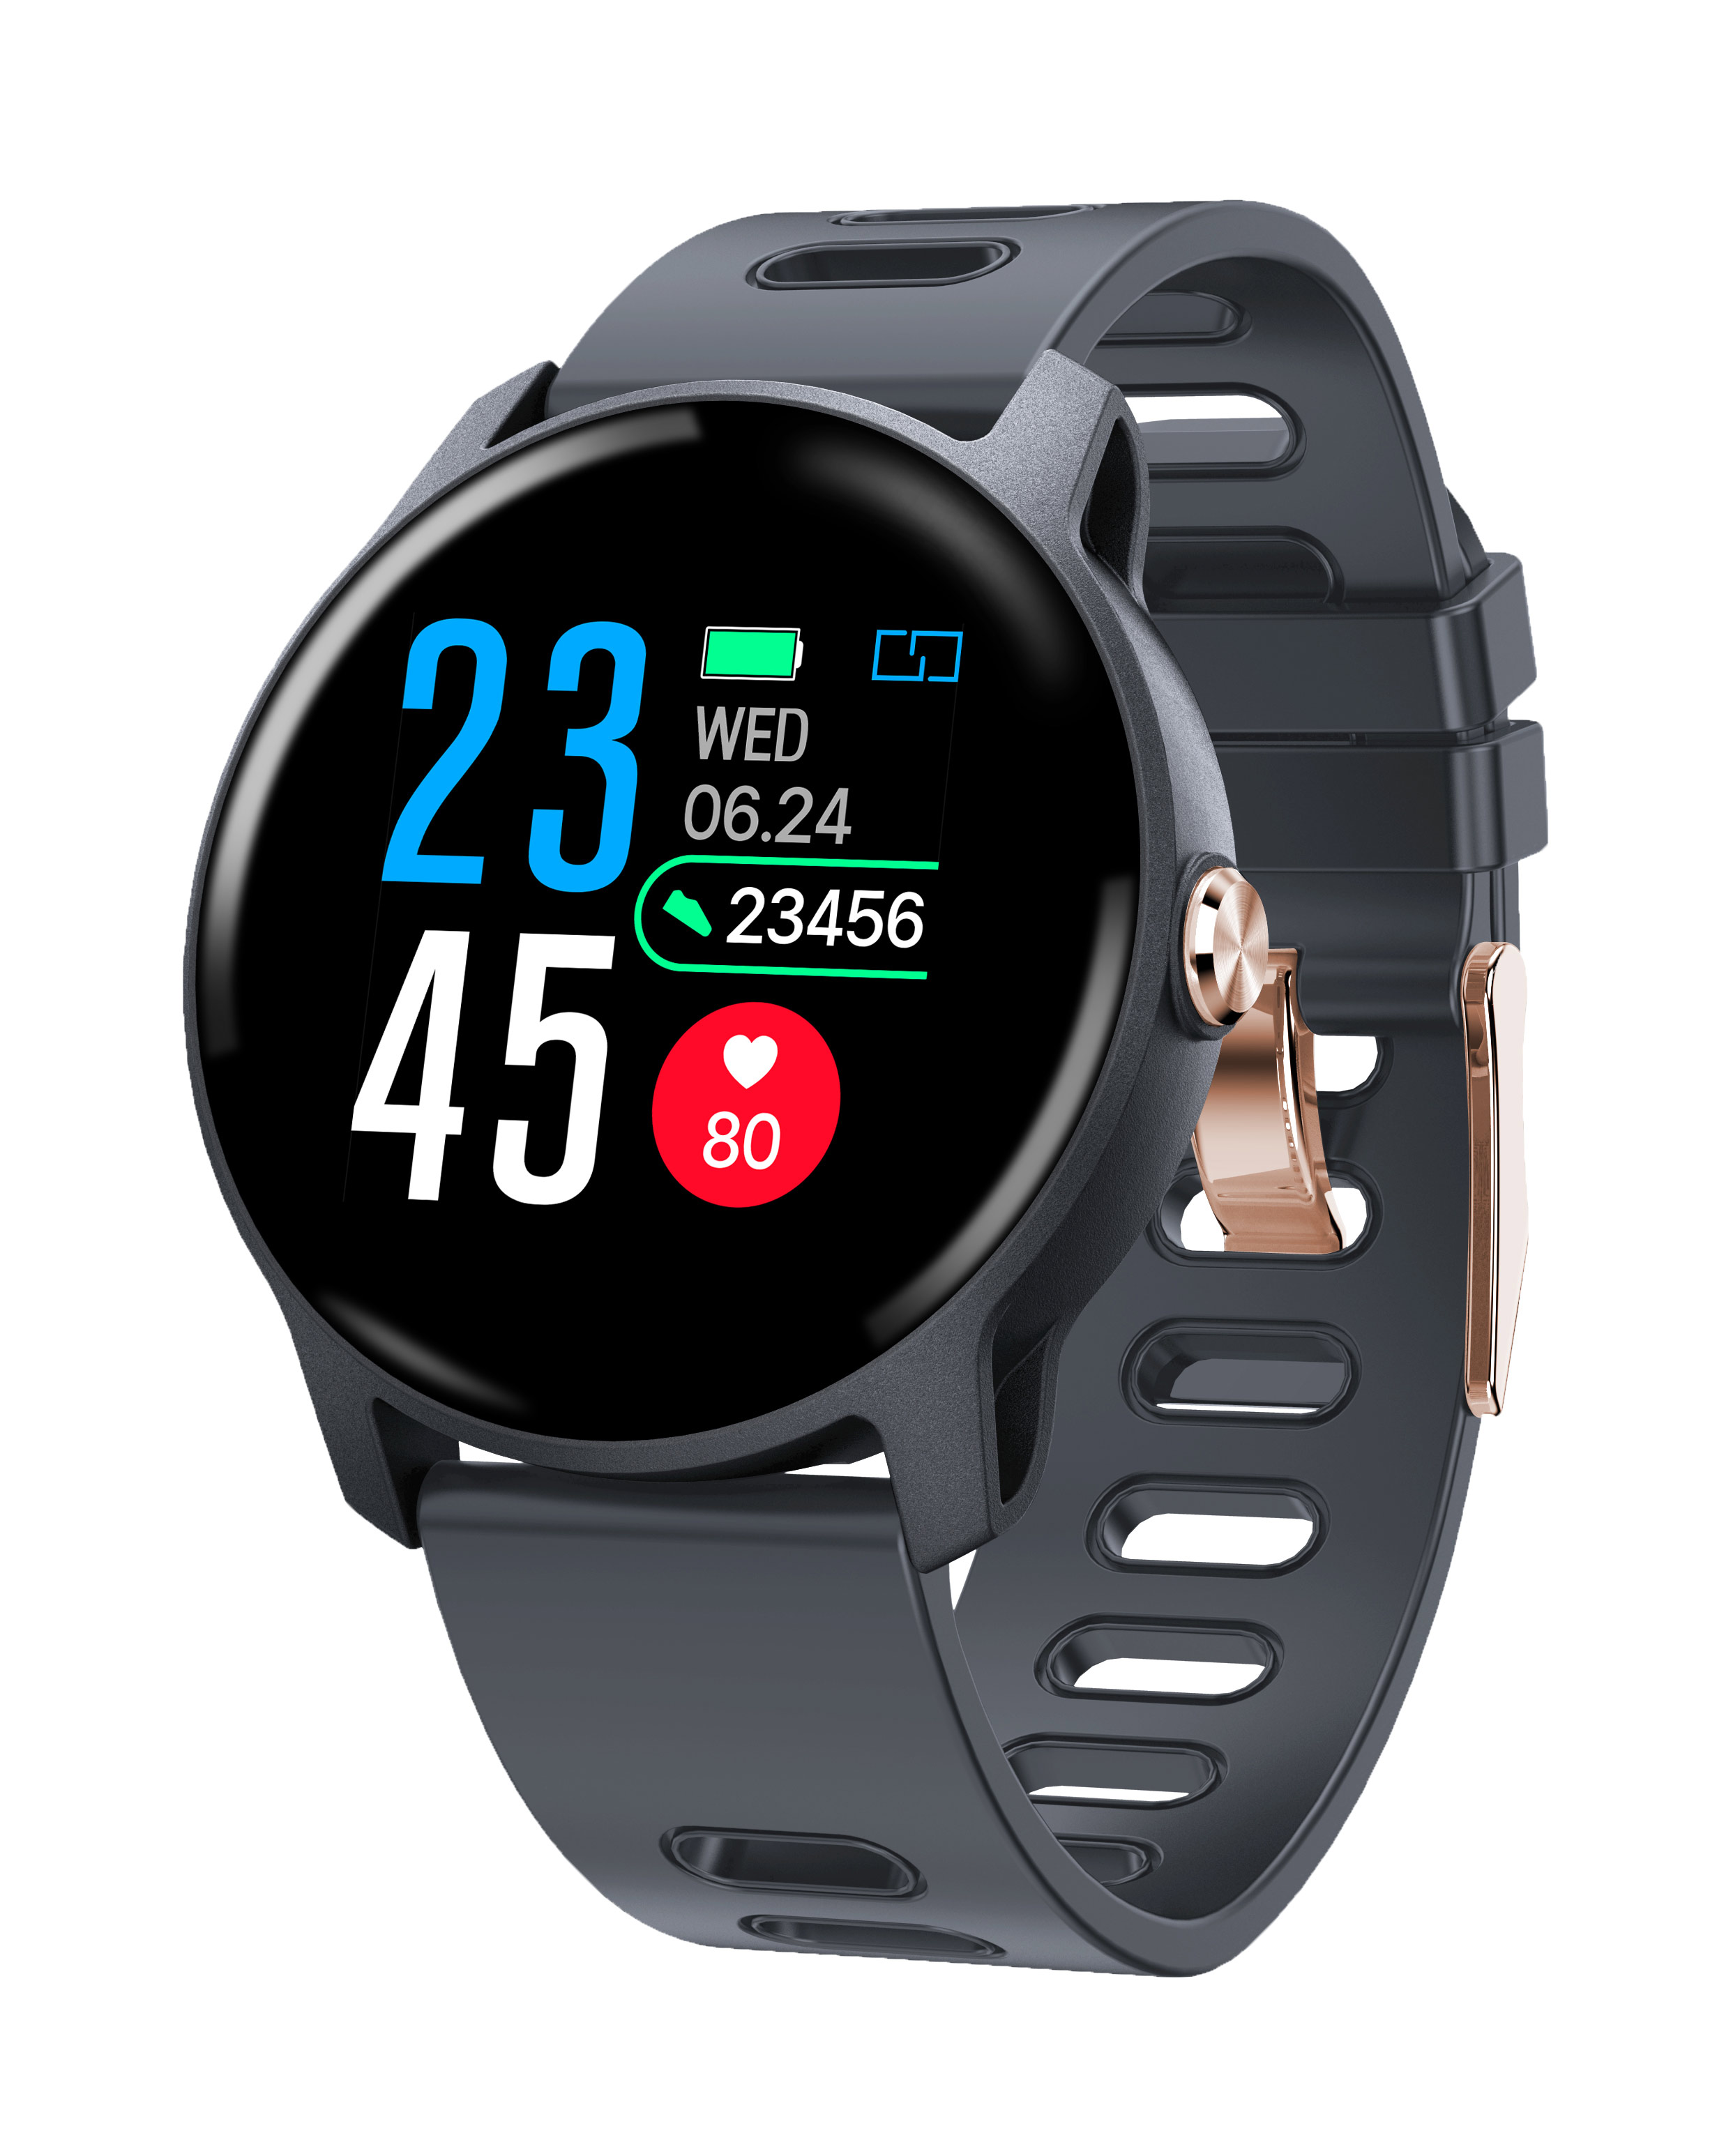 Willgallop S08 Smart Watch Ip68 Waterproof Heart Rate Monitor smartwatch Bluetooth Smartwatch Activity Fitness tracker Band